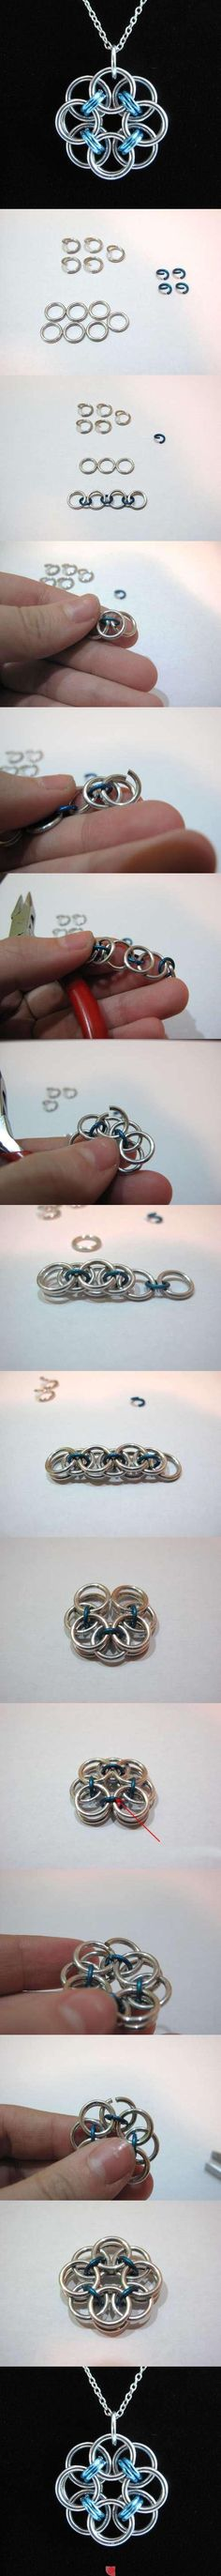 DIY Rose Wire Pendant. http://www.colorsandjoy.com/22-fantastic-diy-jewelry-tutorials-that-youll-love-to-wear/